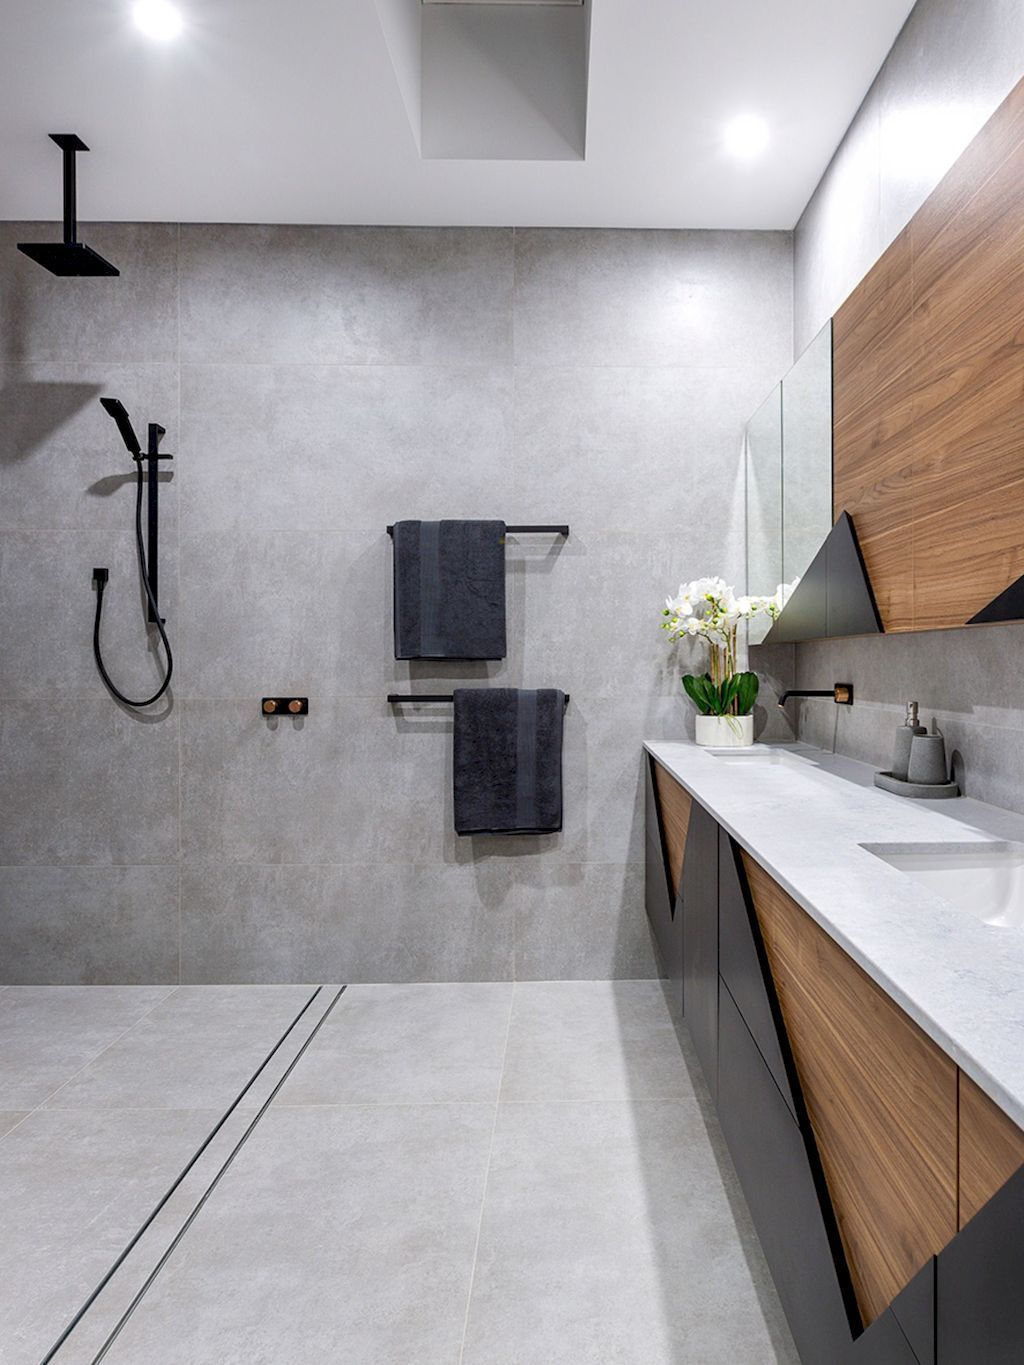 Your Bathroom Beautiful With The Best Accessories Of Minimalist Bathroom Minimalist Bathroom Design Bathroom Design Minimalist Bathroom Minimalist bathroom model size